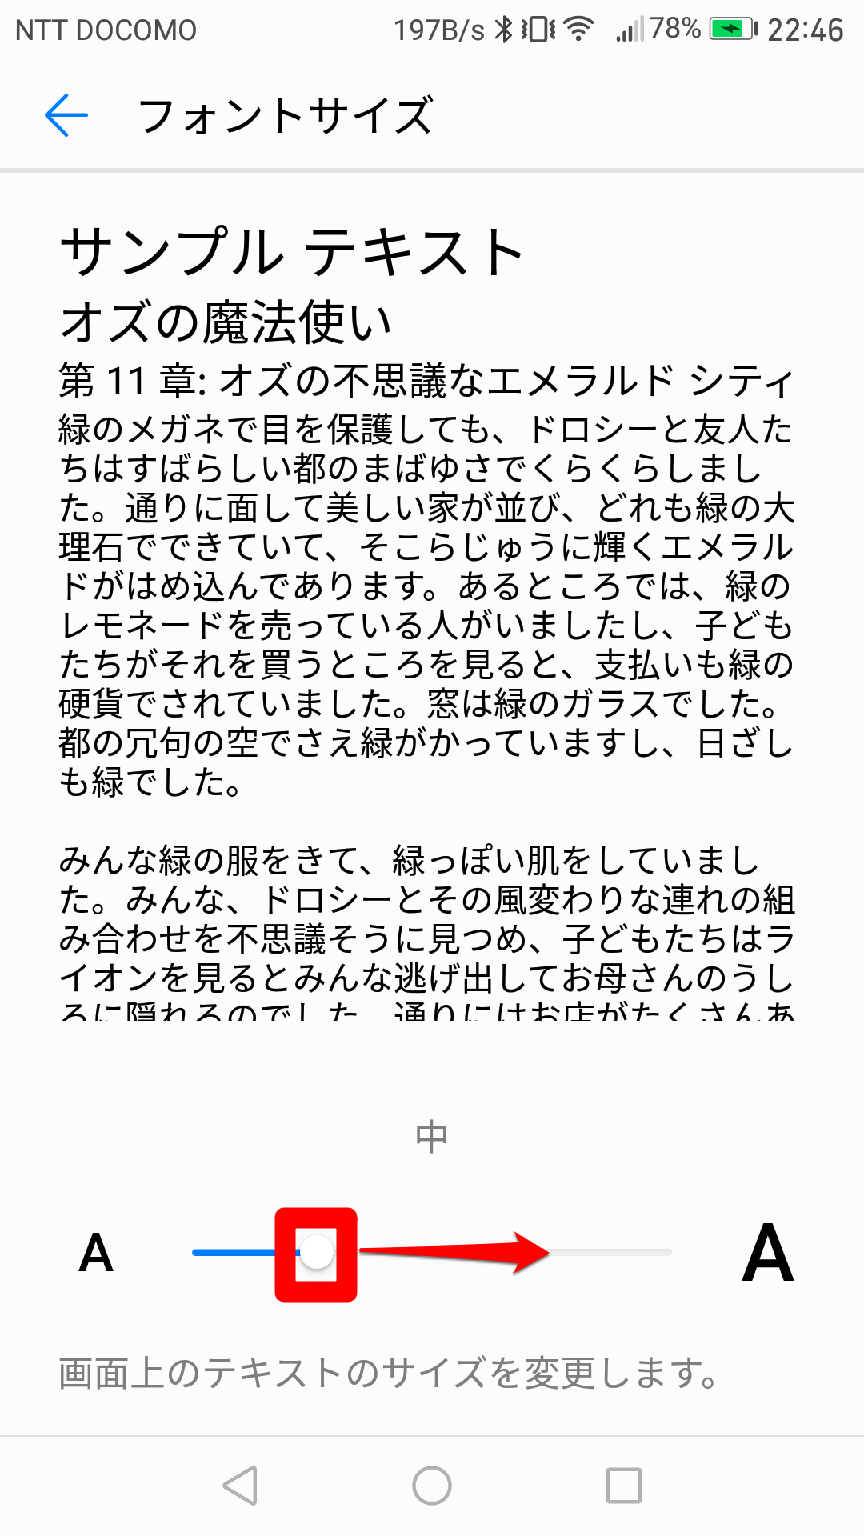 Androidの[フォントサイズ]画面